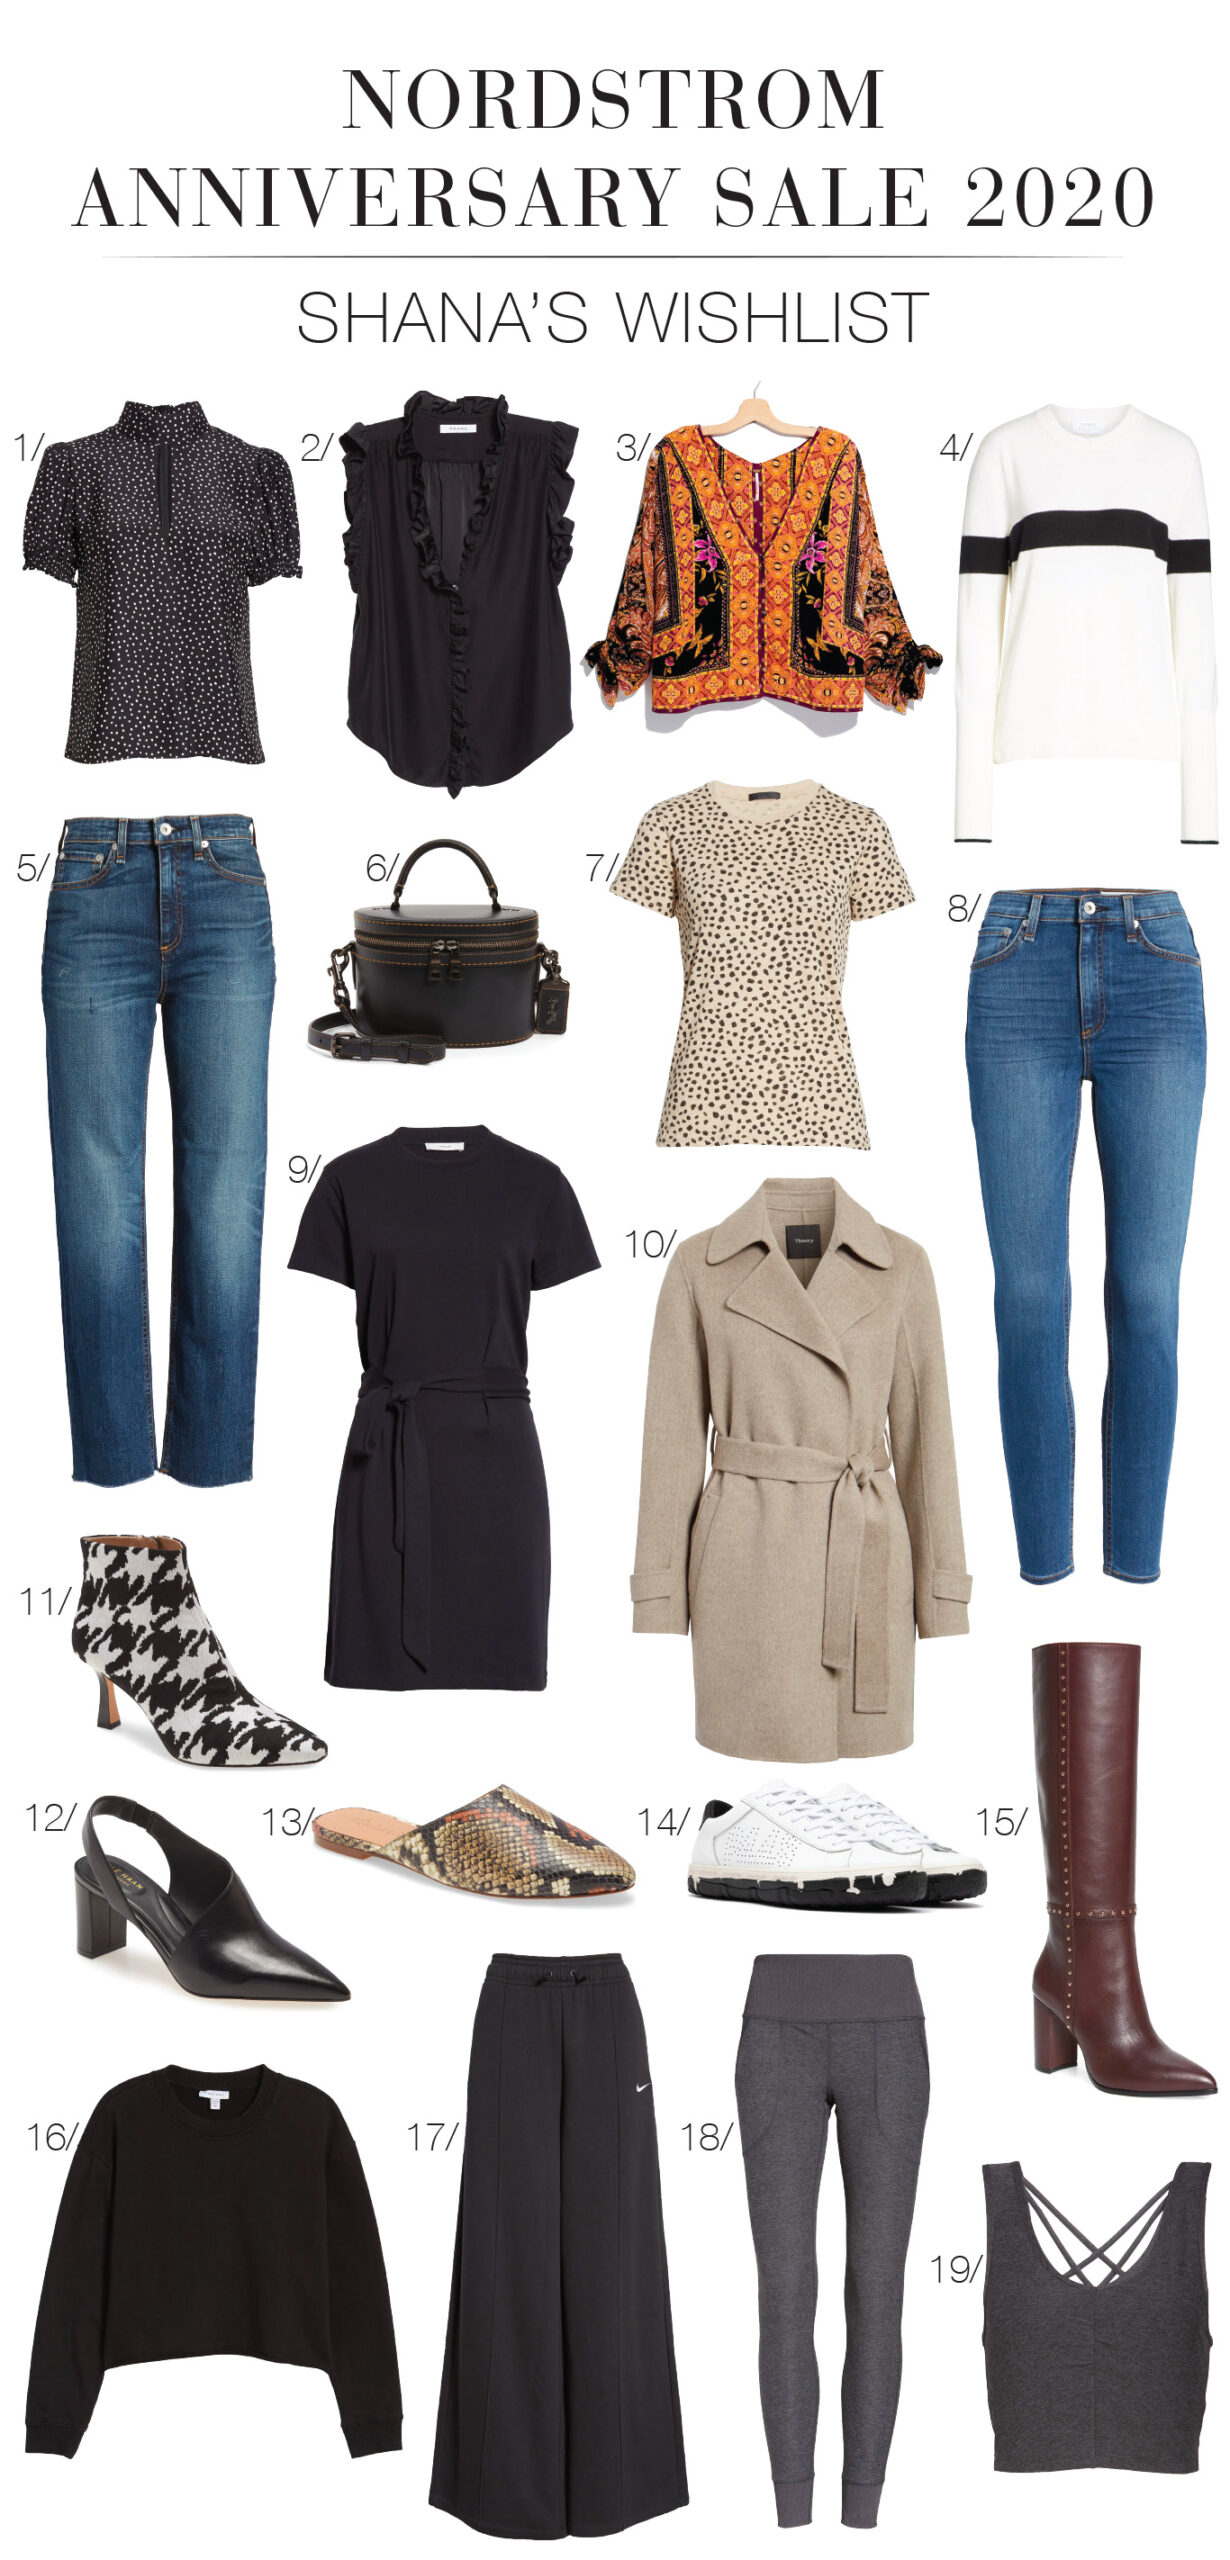 Thanks to online preview, I created The Ultimate Capsule Wardrobe, made 100% from the best items in the 2020 Nordstrom Anniversary Sale...VOILA.